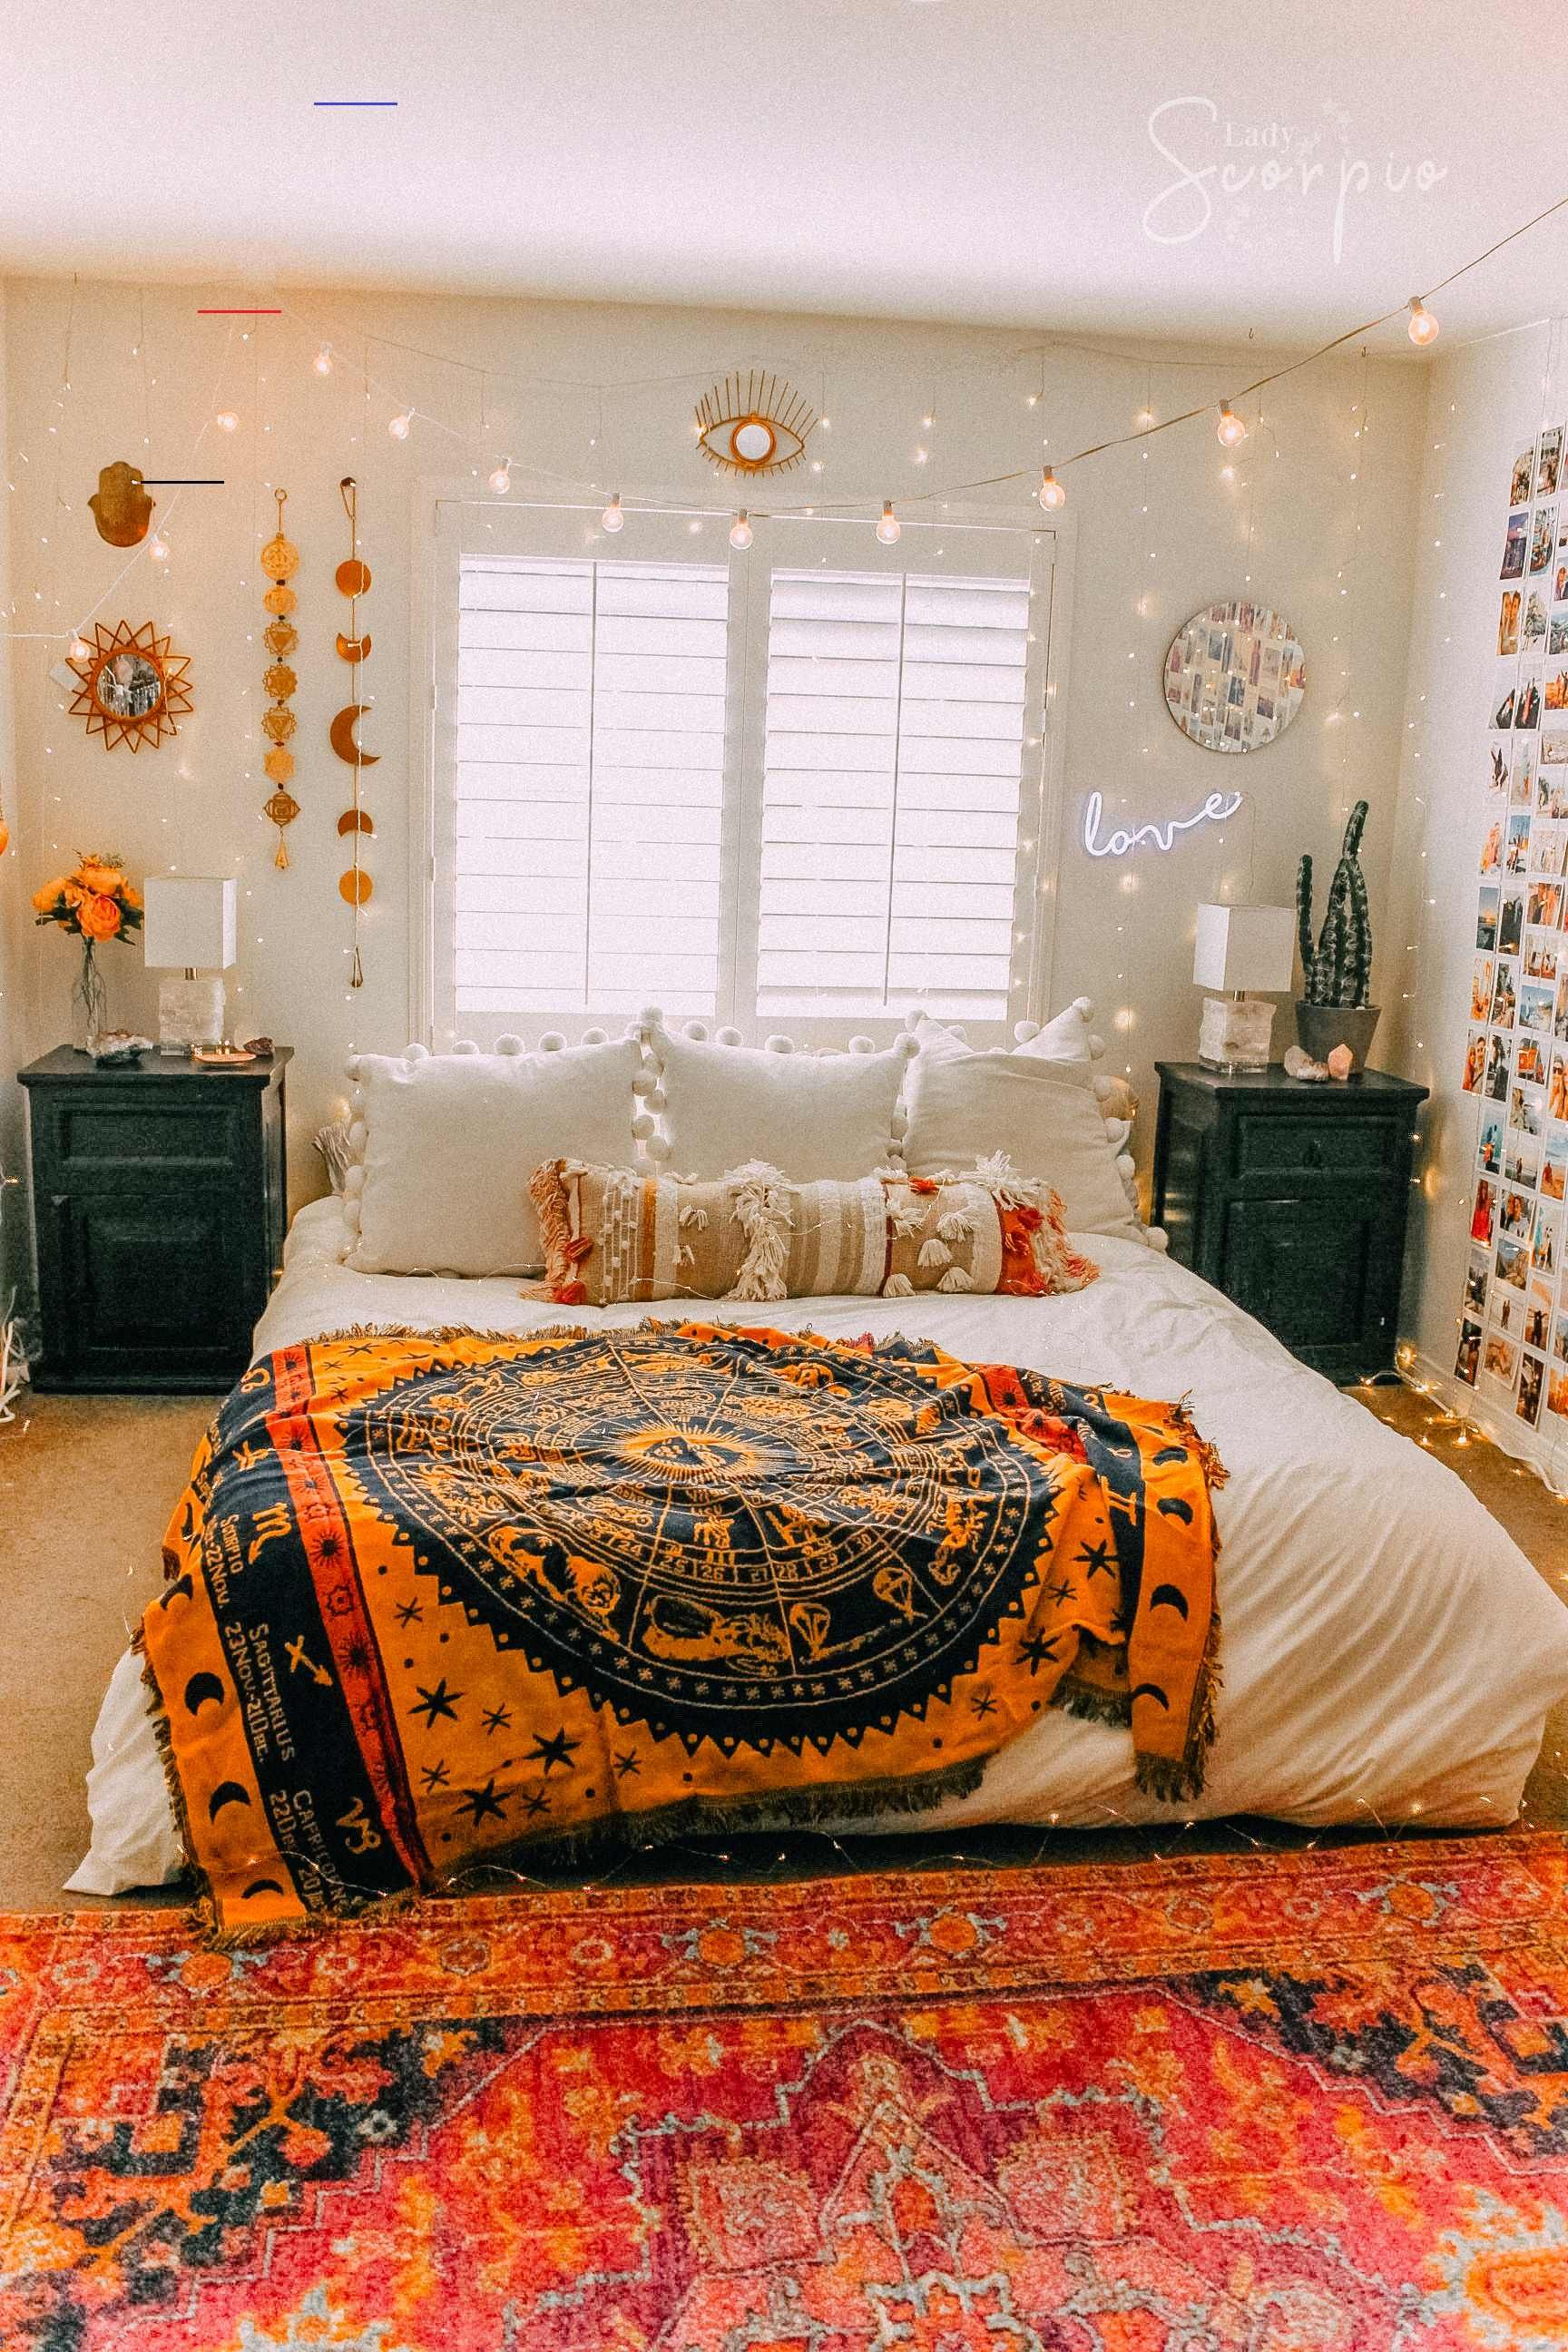 Pin On Room Ideas